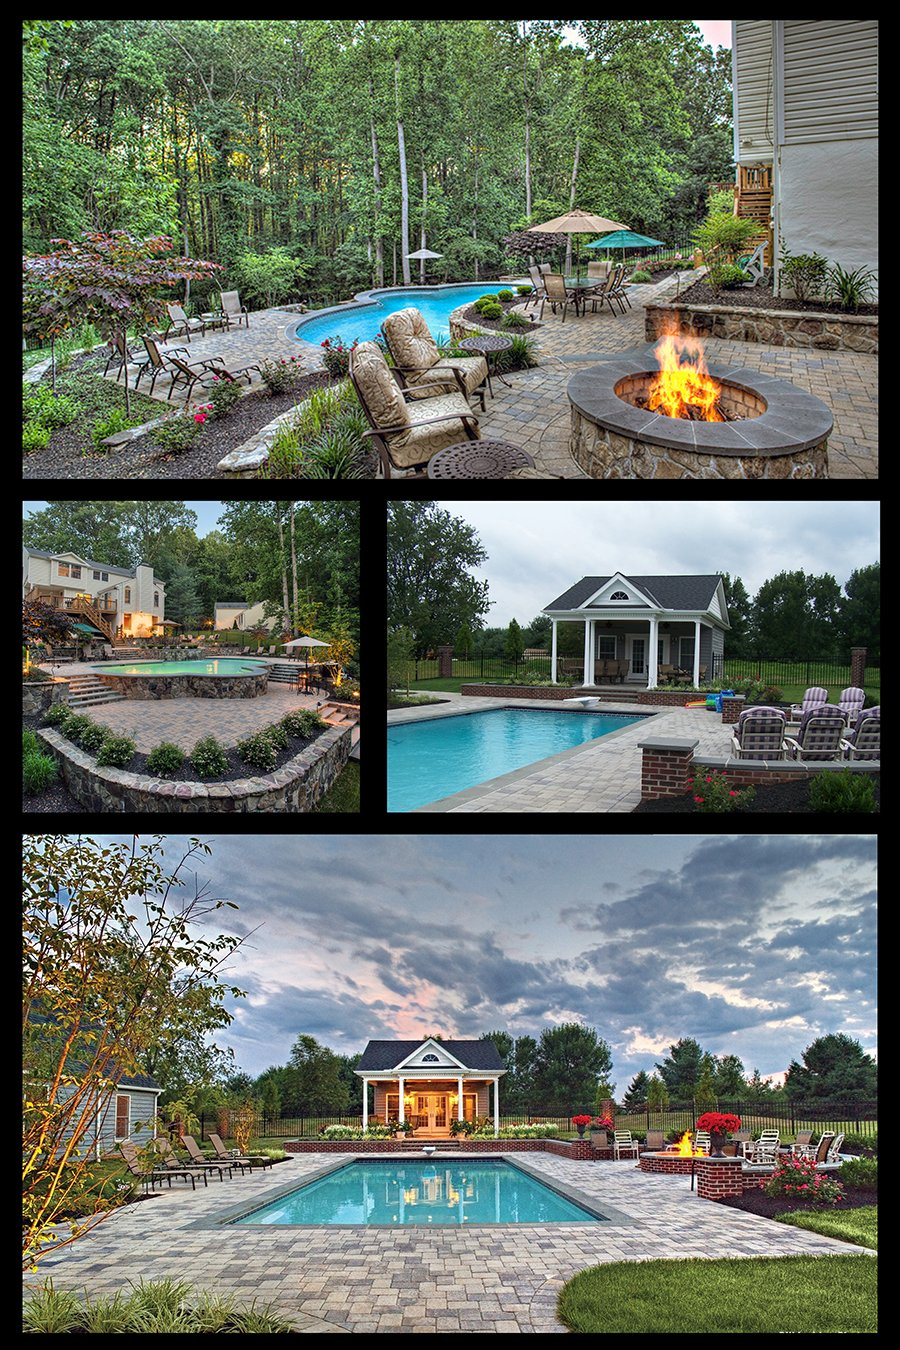 Incredible backyard upgrades and outdoor living